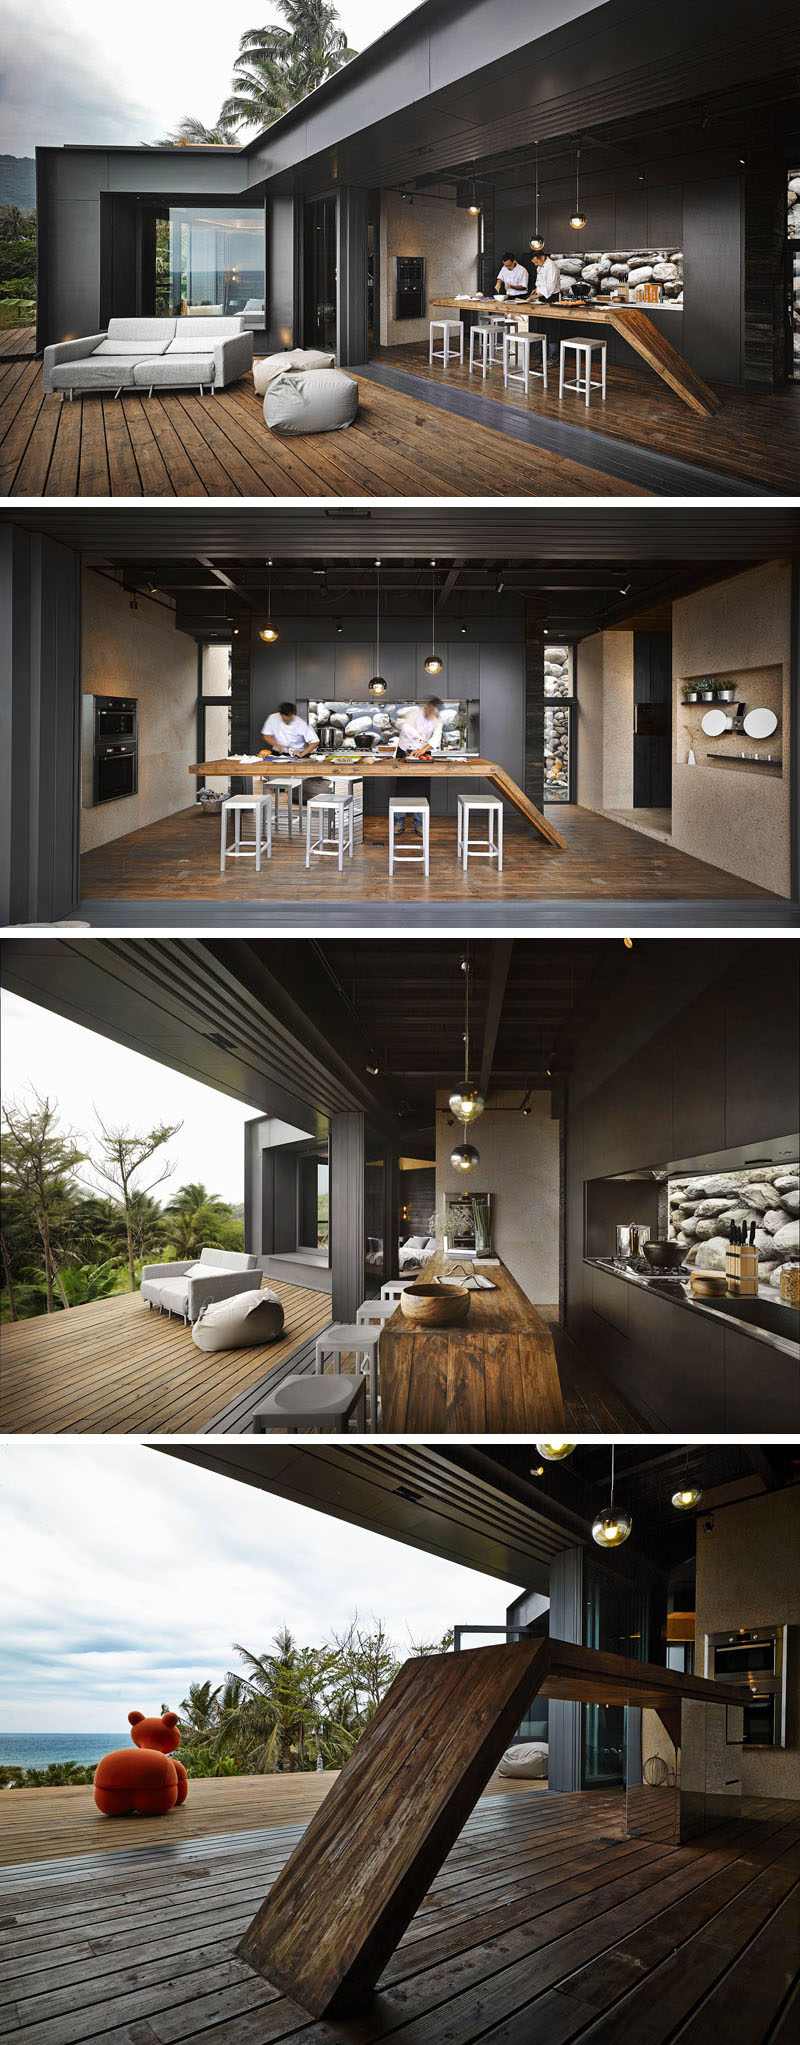 This black kitchen with a wooden countertop opens up to the deck for complete indoor/outdoor living. By using clear glass for the kitchen backsplash, it lets the rocks in the garden appear as a piece of art, and when needed, the kitchen can be closed off to the elements with accordion glass doors.